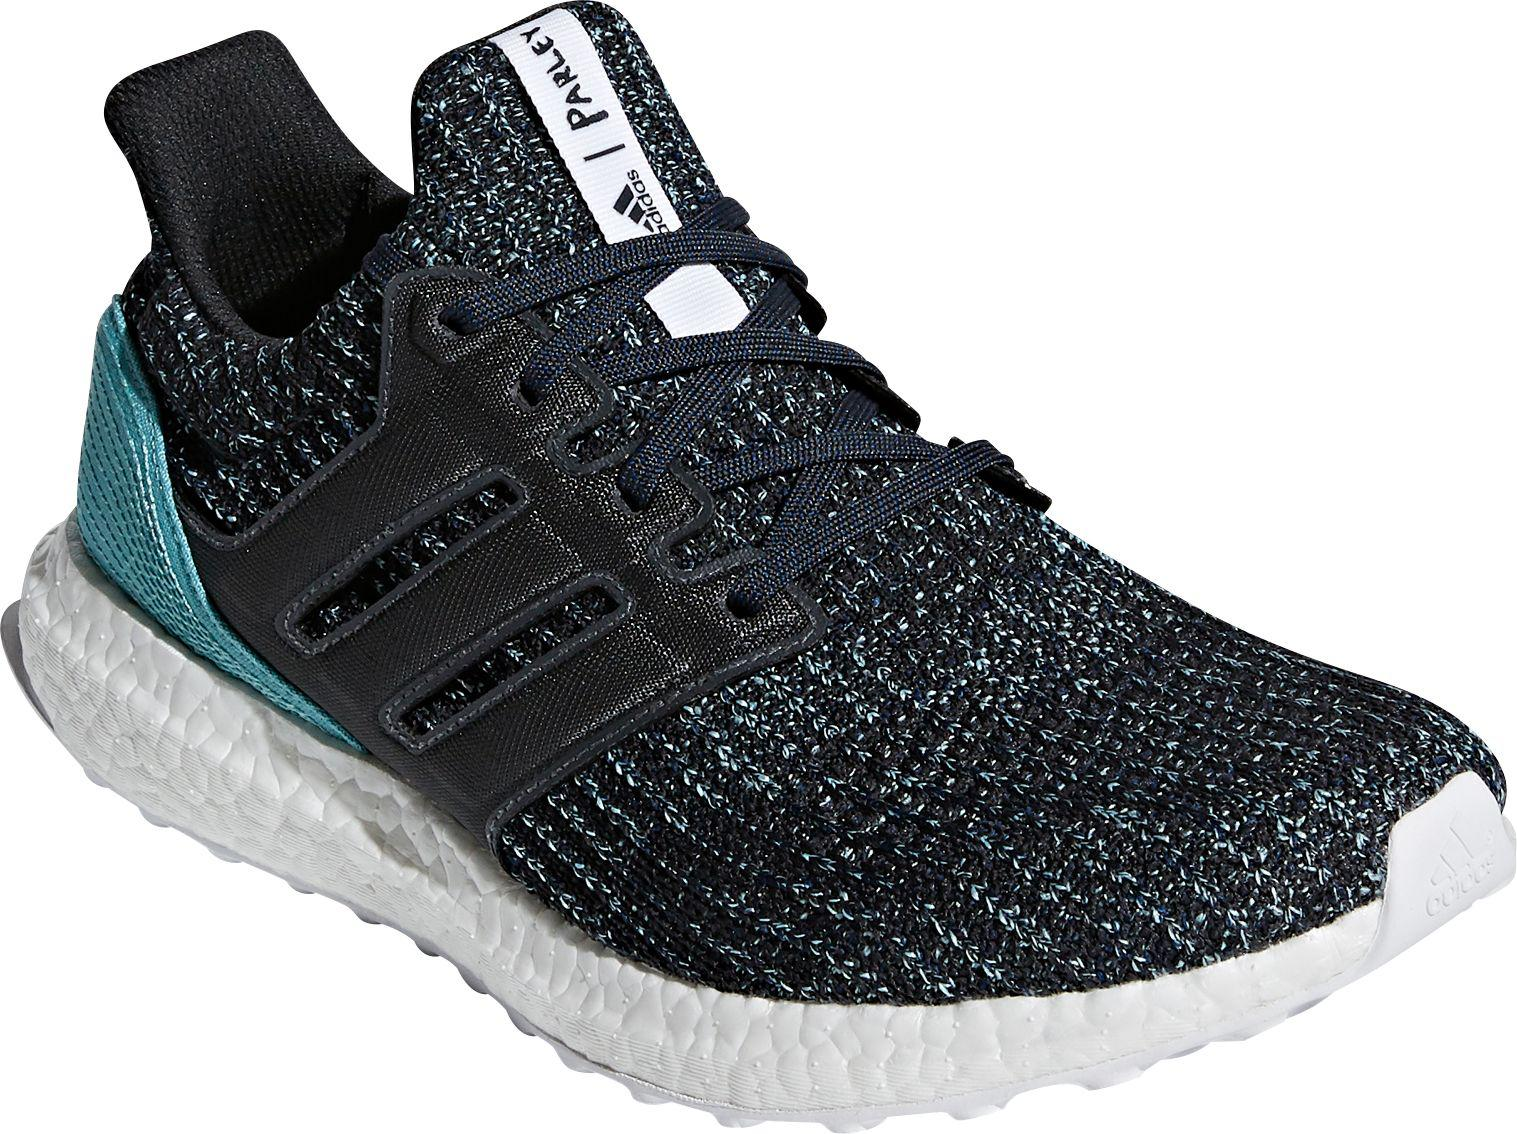 2b1c7e31d90b6 Adidas - Multicolor Ultra Boost Parley Running Shoes for Men - Lyst